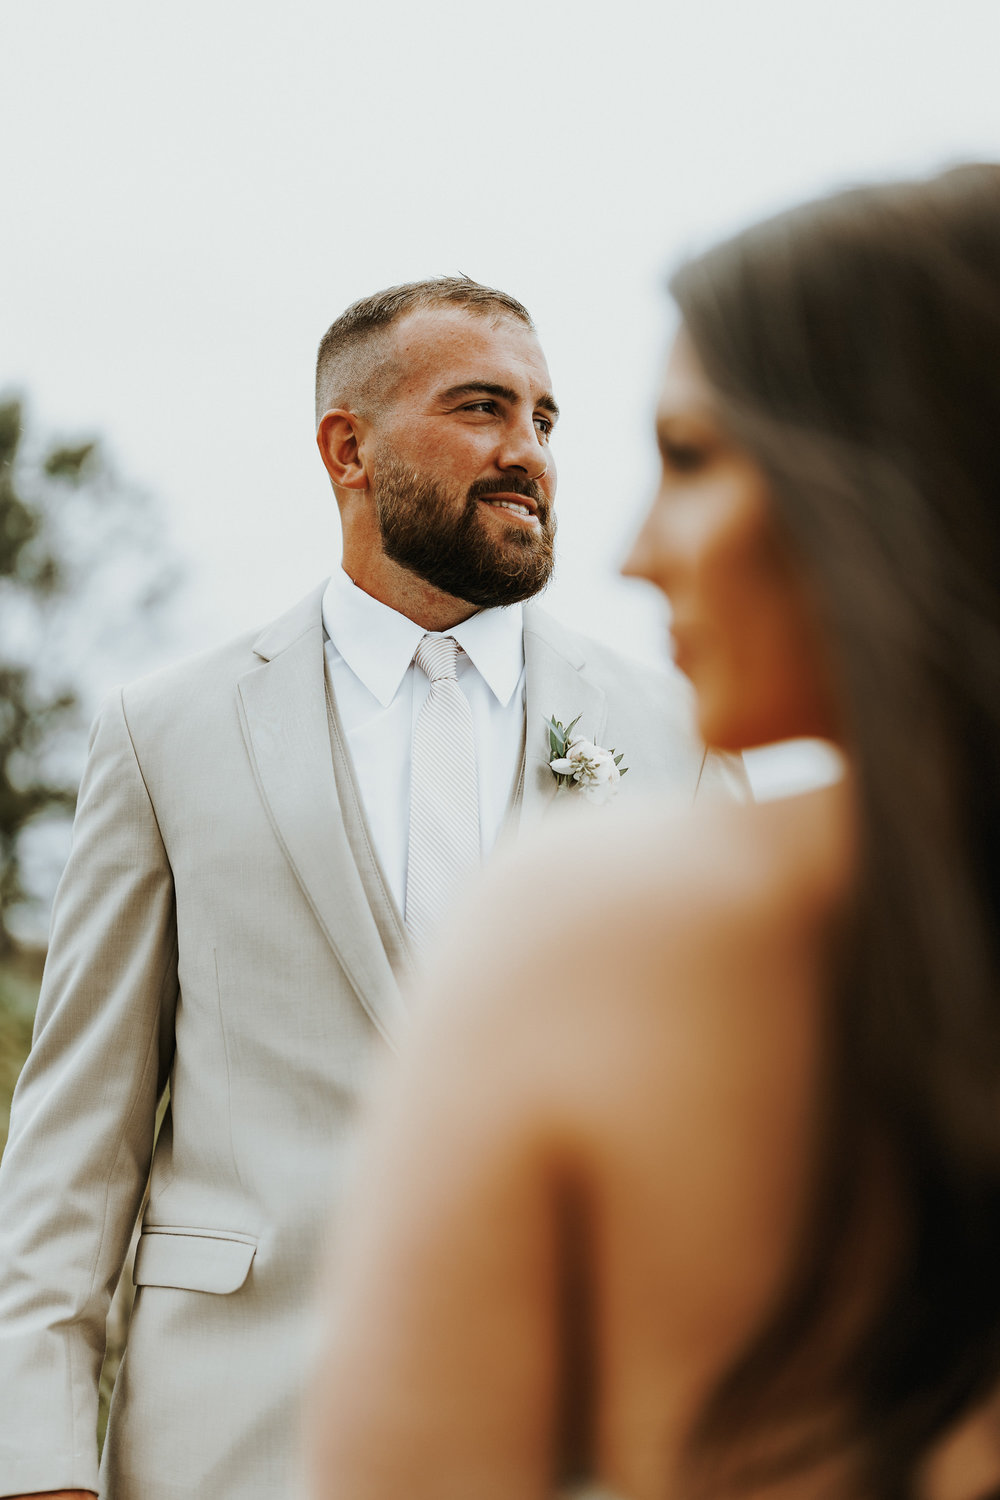 Our Wedding Photos: Part II | Pine Barren Beauty | wedding photo ideas, wedding photo inspiration, bride and groom portraits